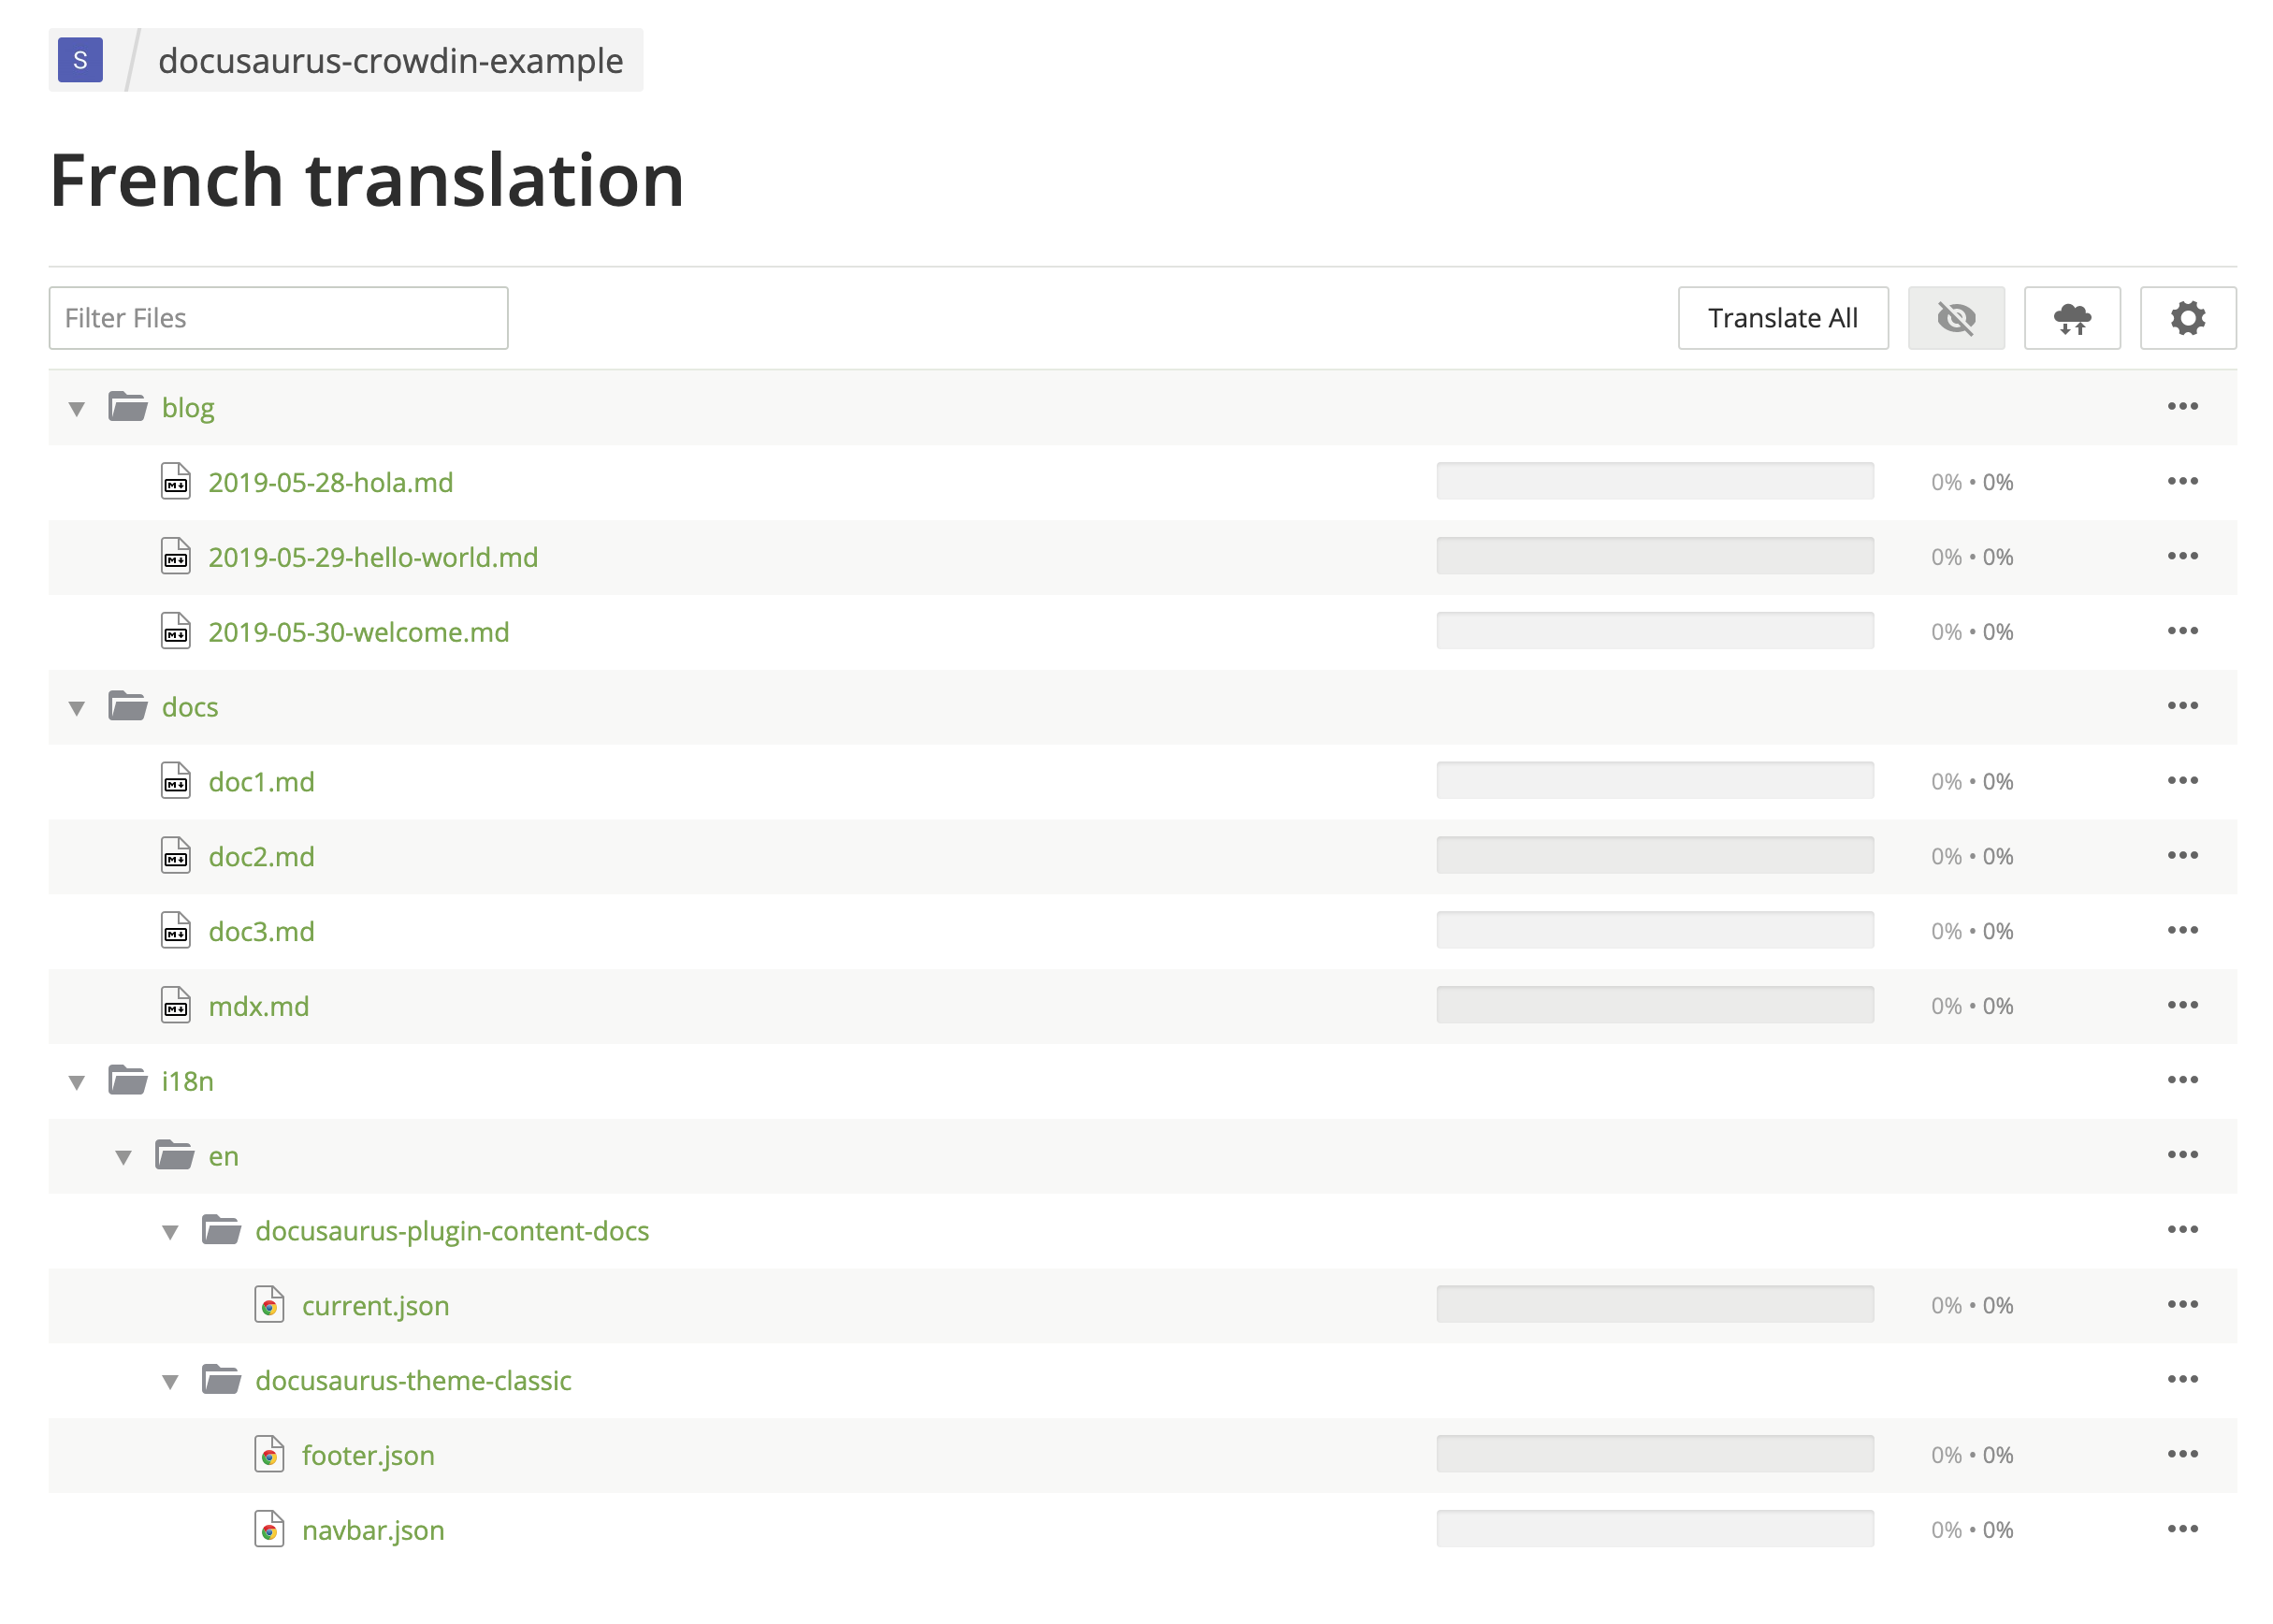 Crowdin UI showing French translation files